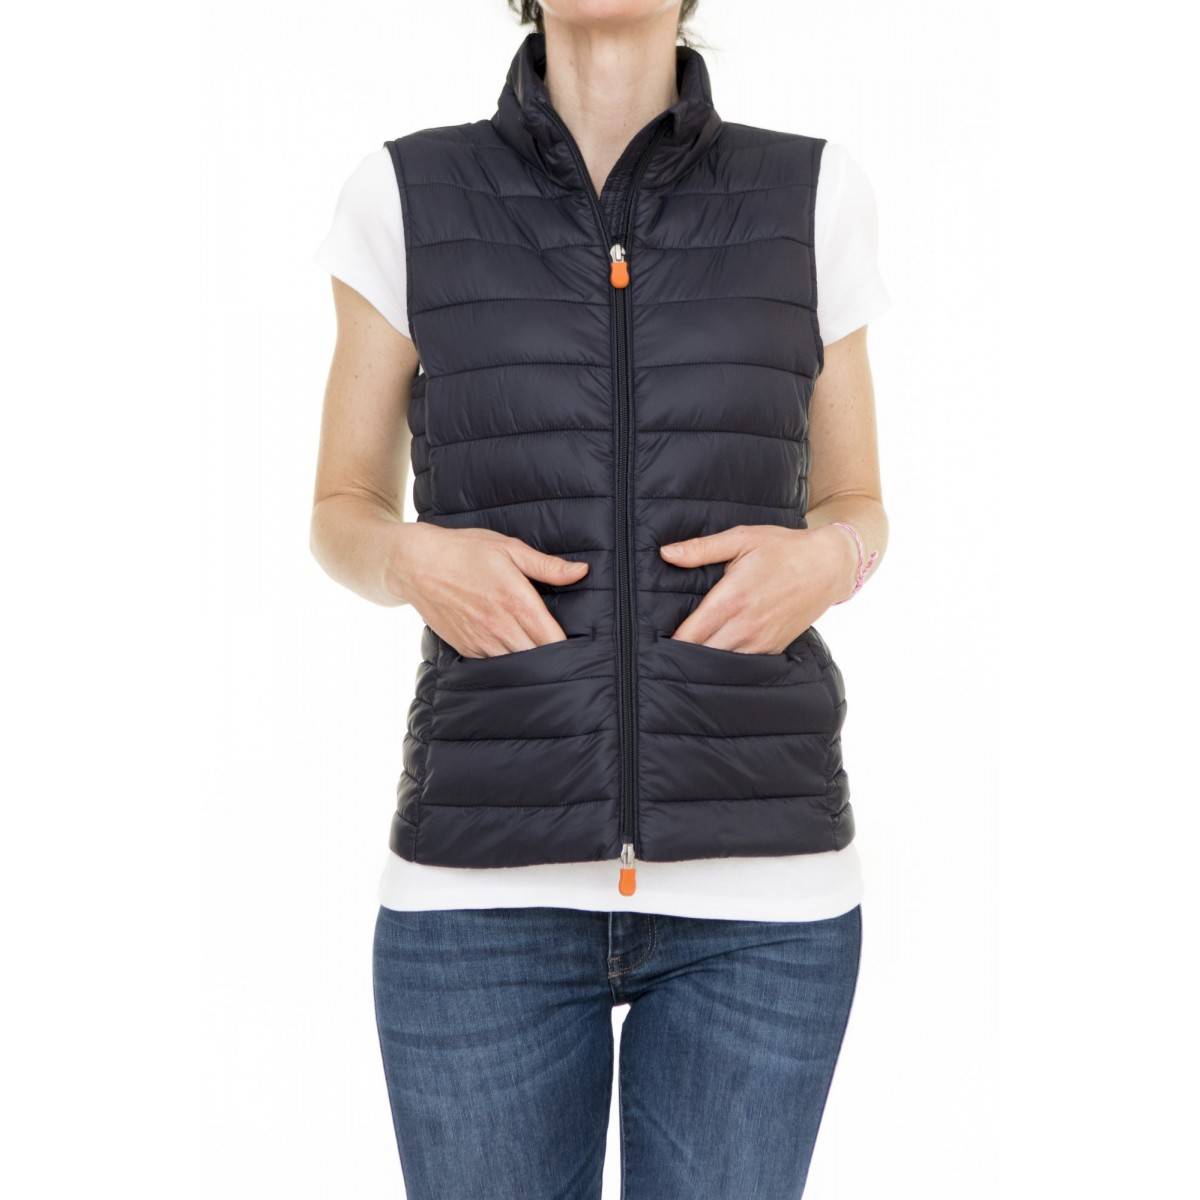 Piumino Save the duck - D8401w giga3 gilet